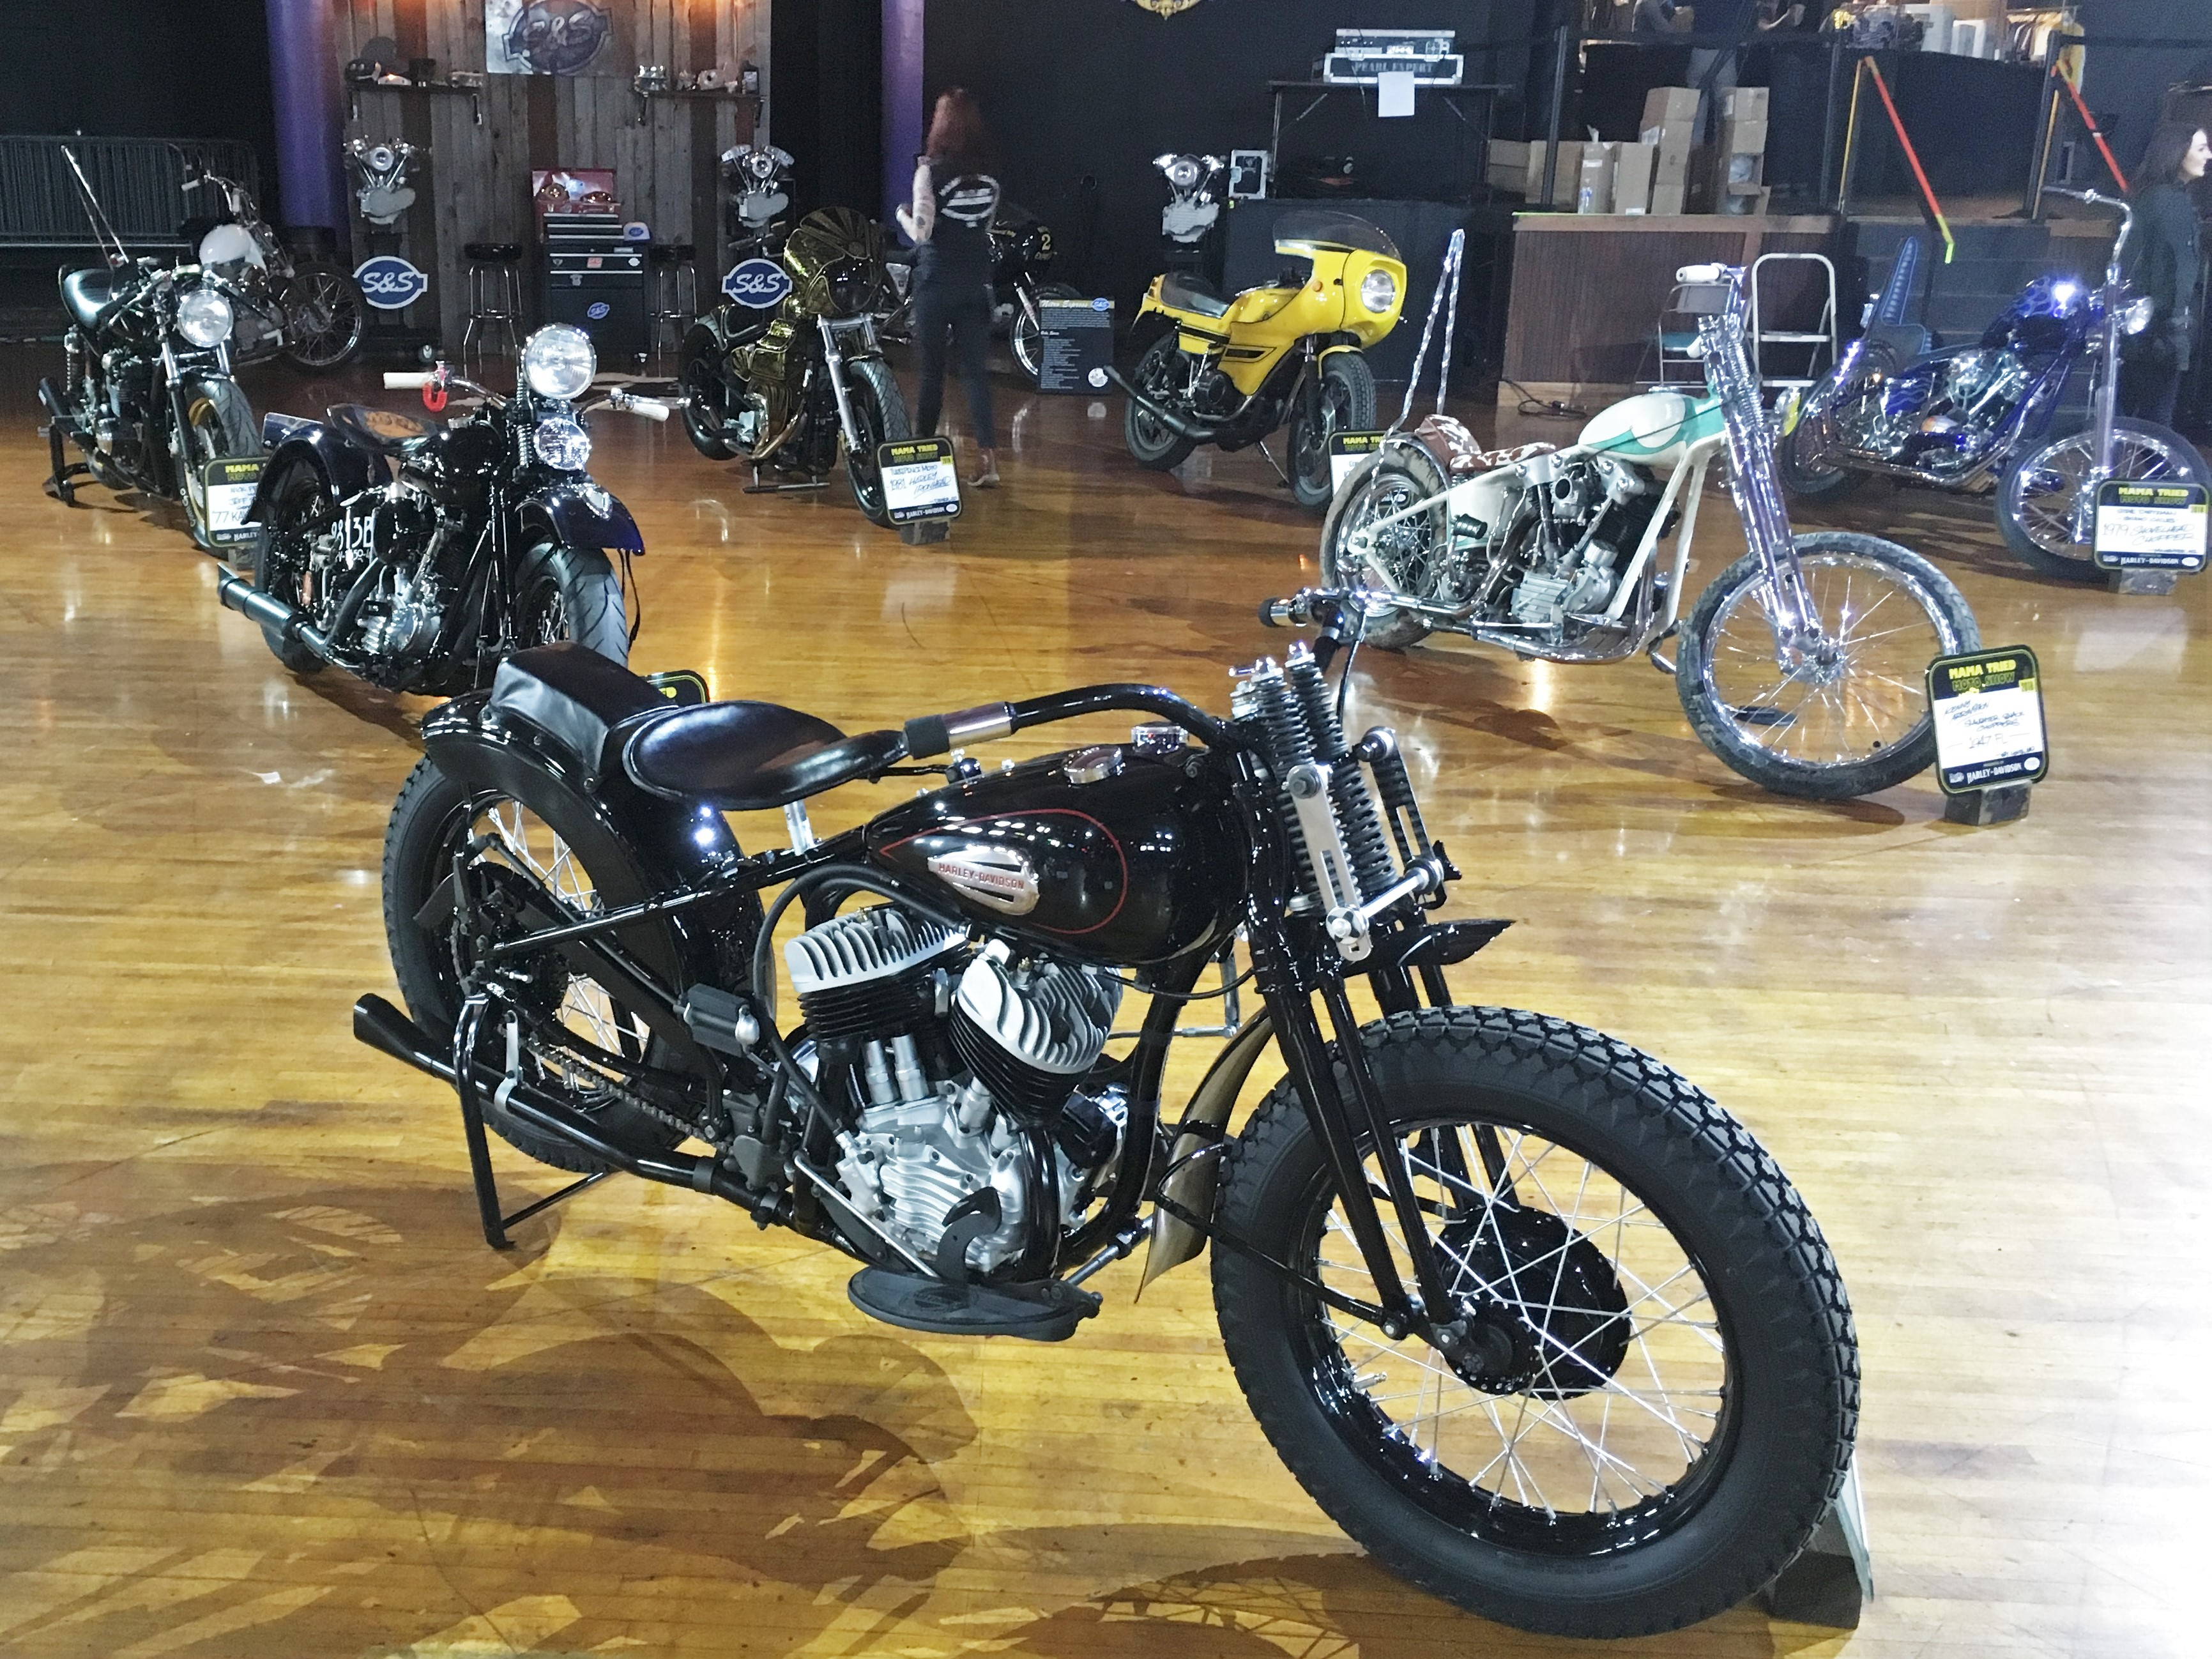 Harley looks for next generation of bikers in its own ...